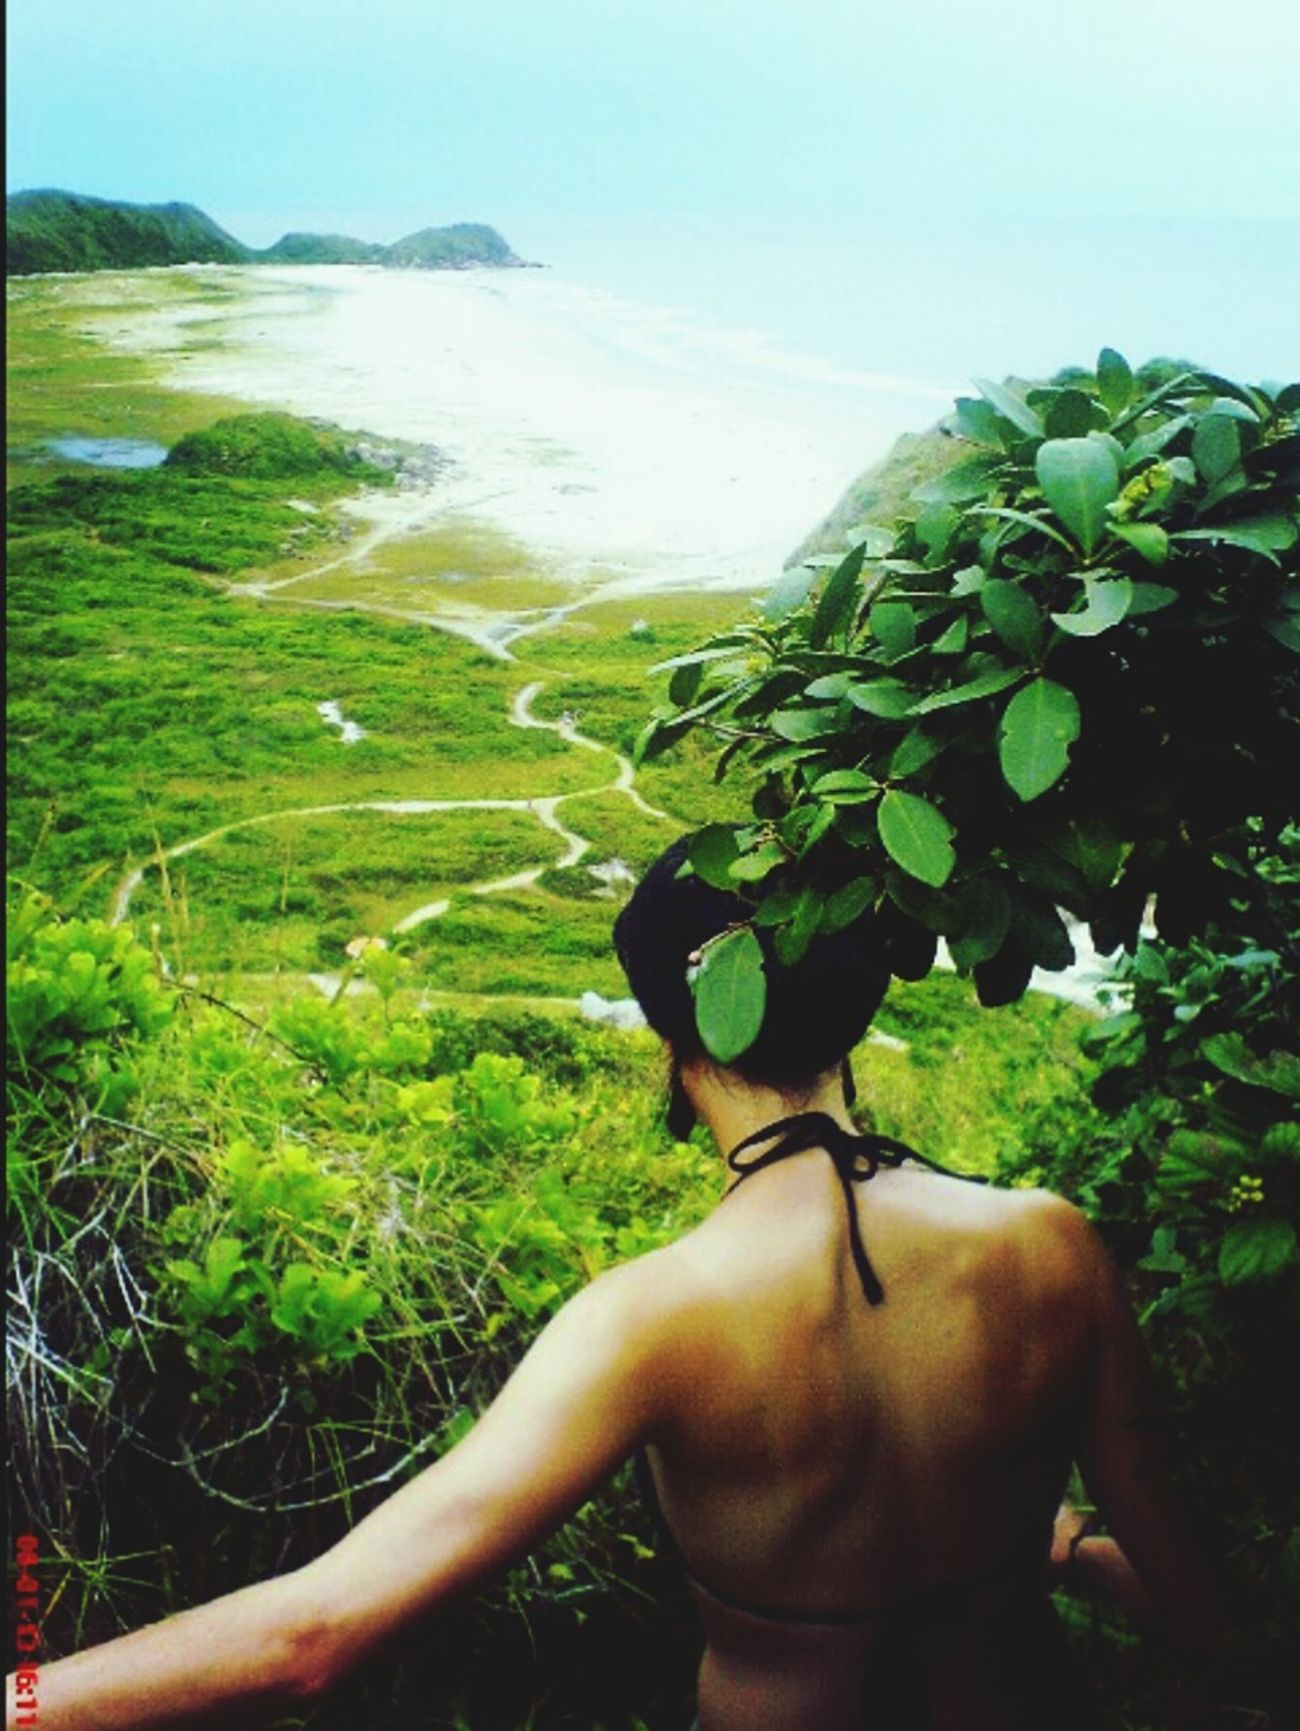 Travelling the world is an amazing experience Ilhadomel Honeyisland Beautiful View Climbing Rocks Catch Moments Enjoying The View Tranquility Pazeamor Peace, Love And Weed. Brazil Wild And Free✌ Lost In Wonderland